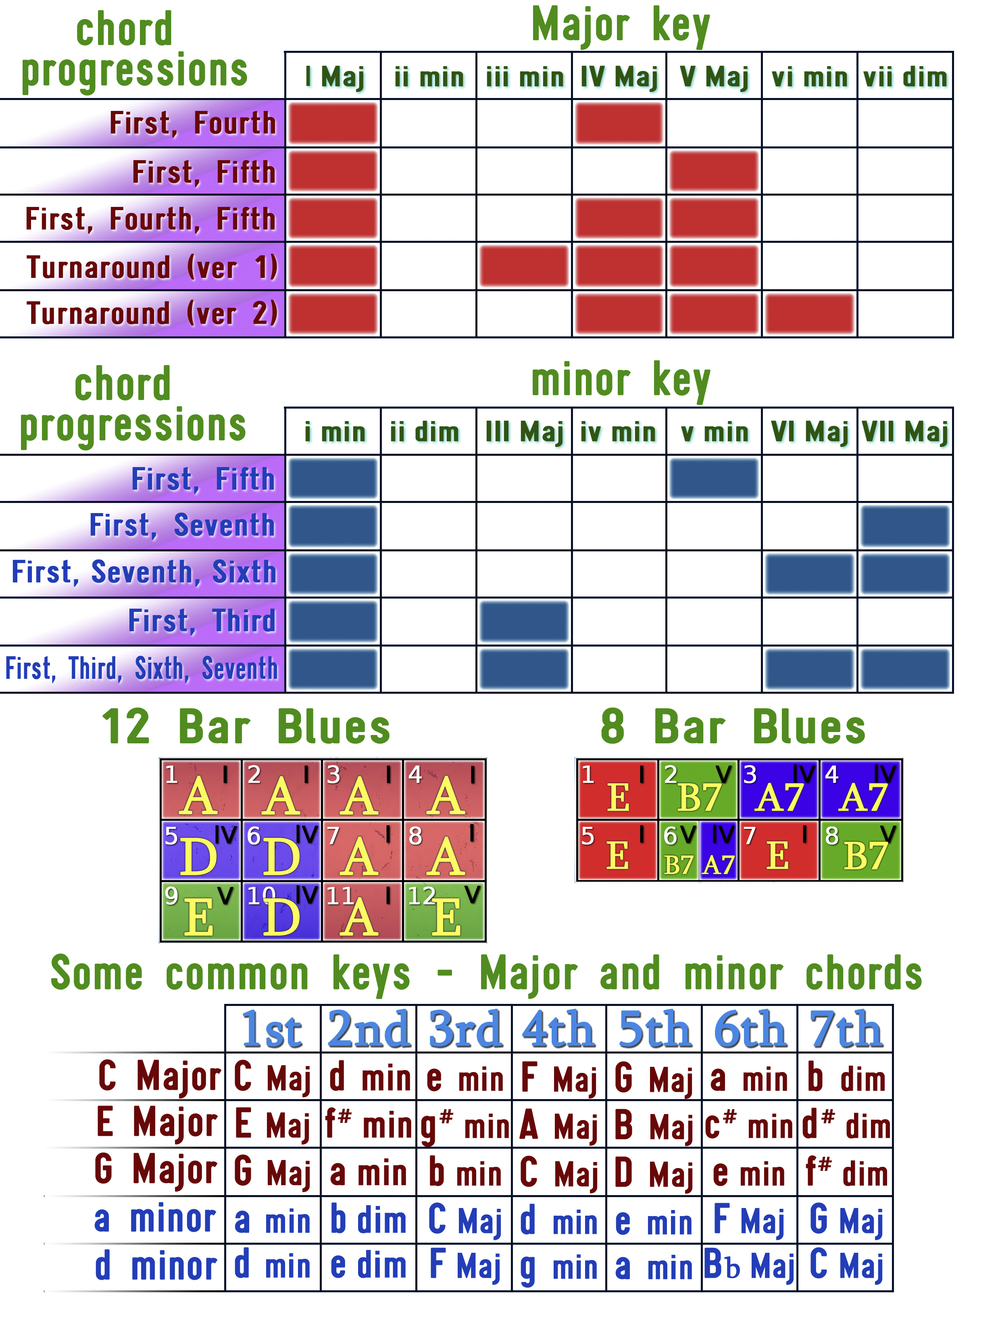 chart of common chord progressions